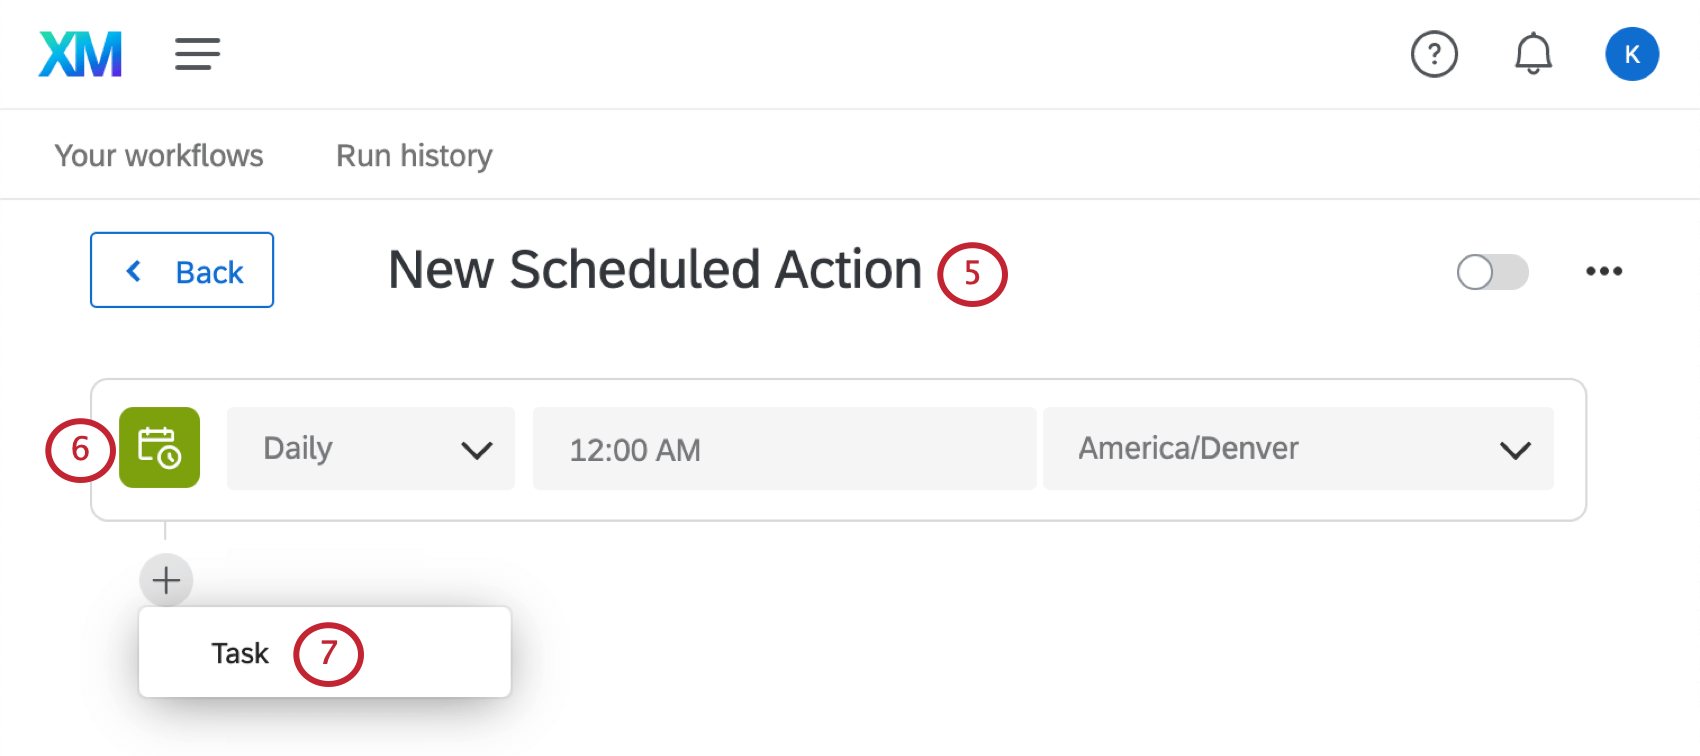 renaming a workflow, setting a sechedule, and adding a task